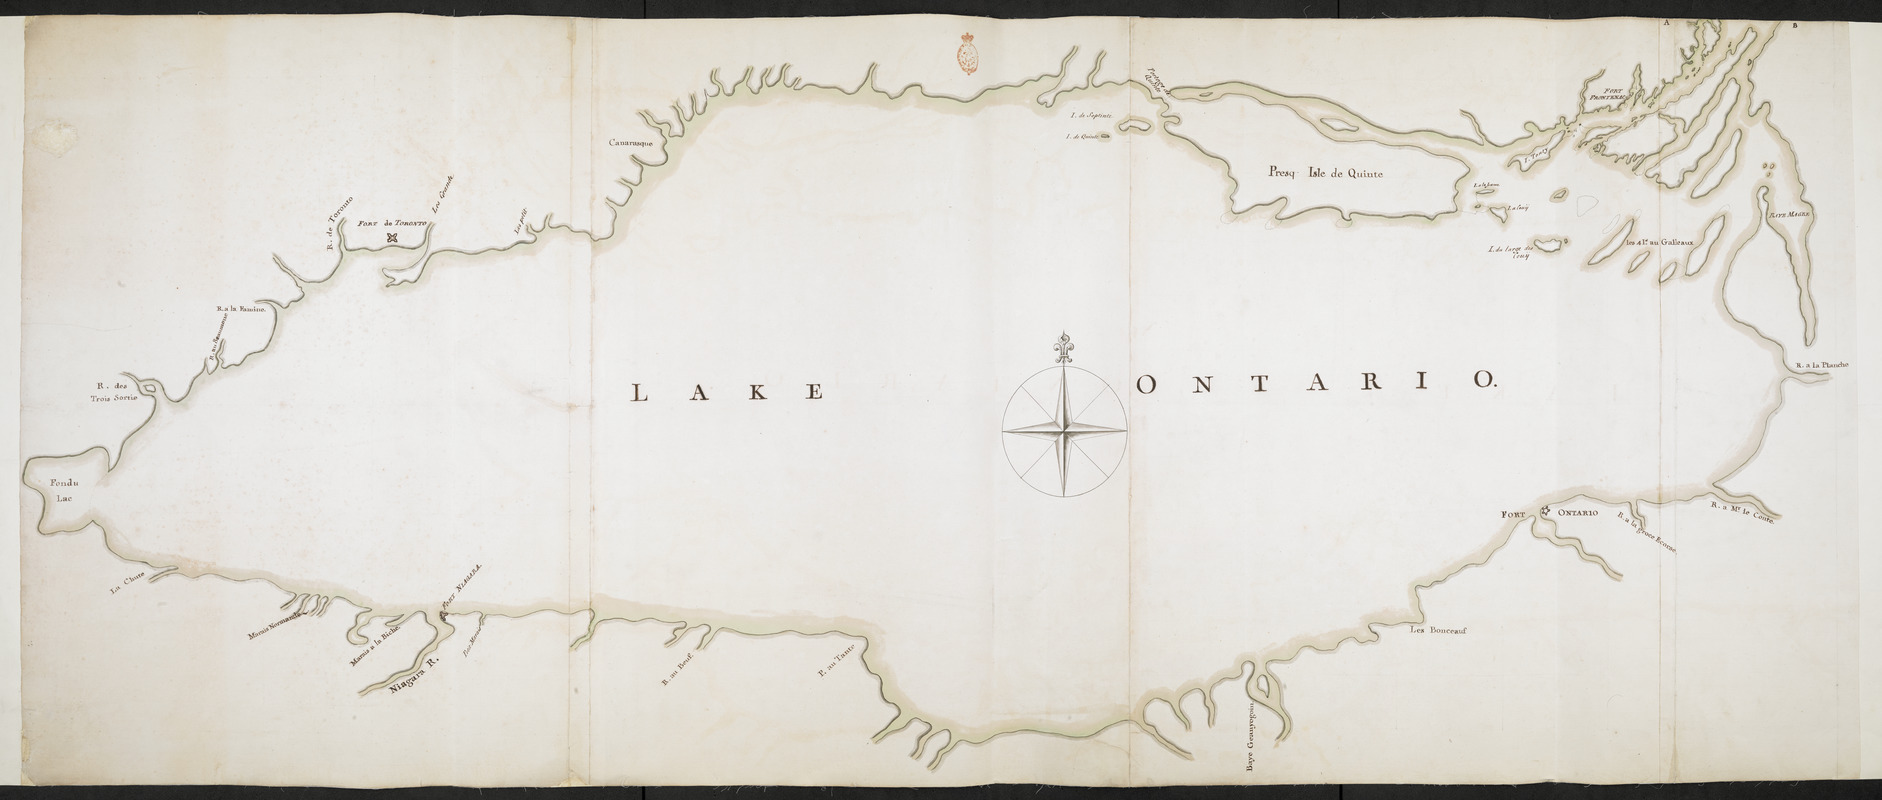 Lake Ontario & River S.t Laurence from the Lake to Fort William Augustus in Three Rivers, this was taken from a French Draft that was on Board the Prise Williamson belonging to Monsr La Broquerie [west sheet]